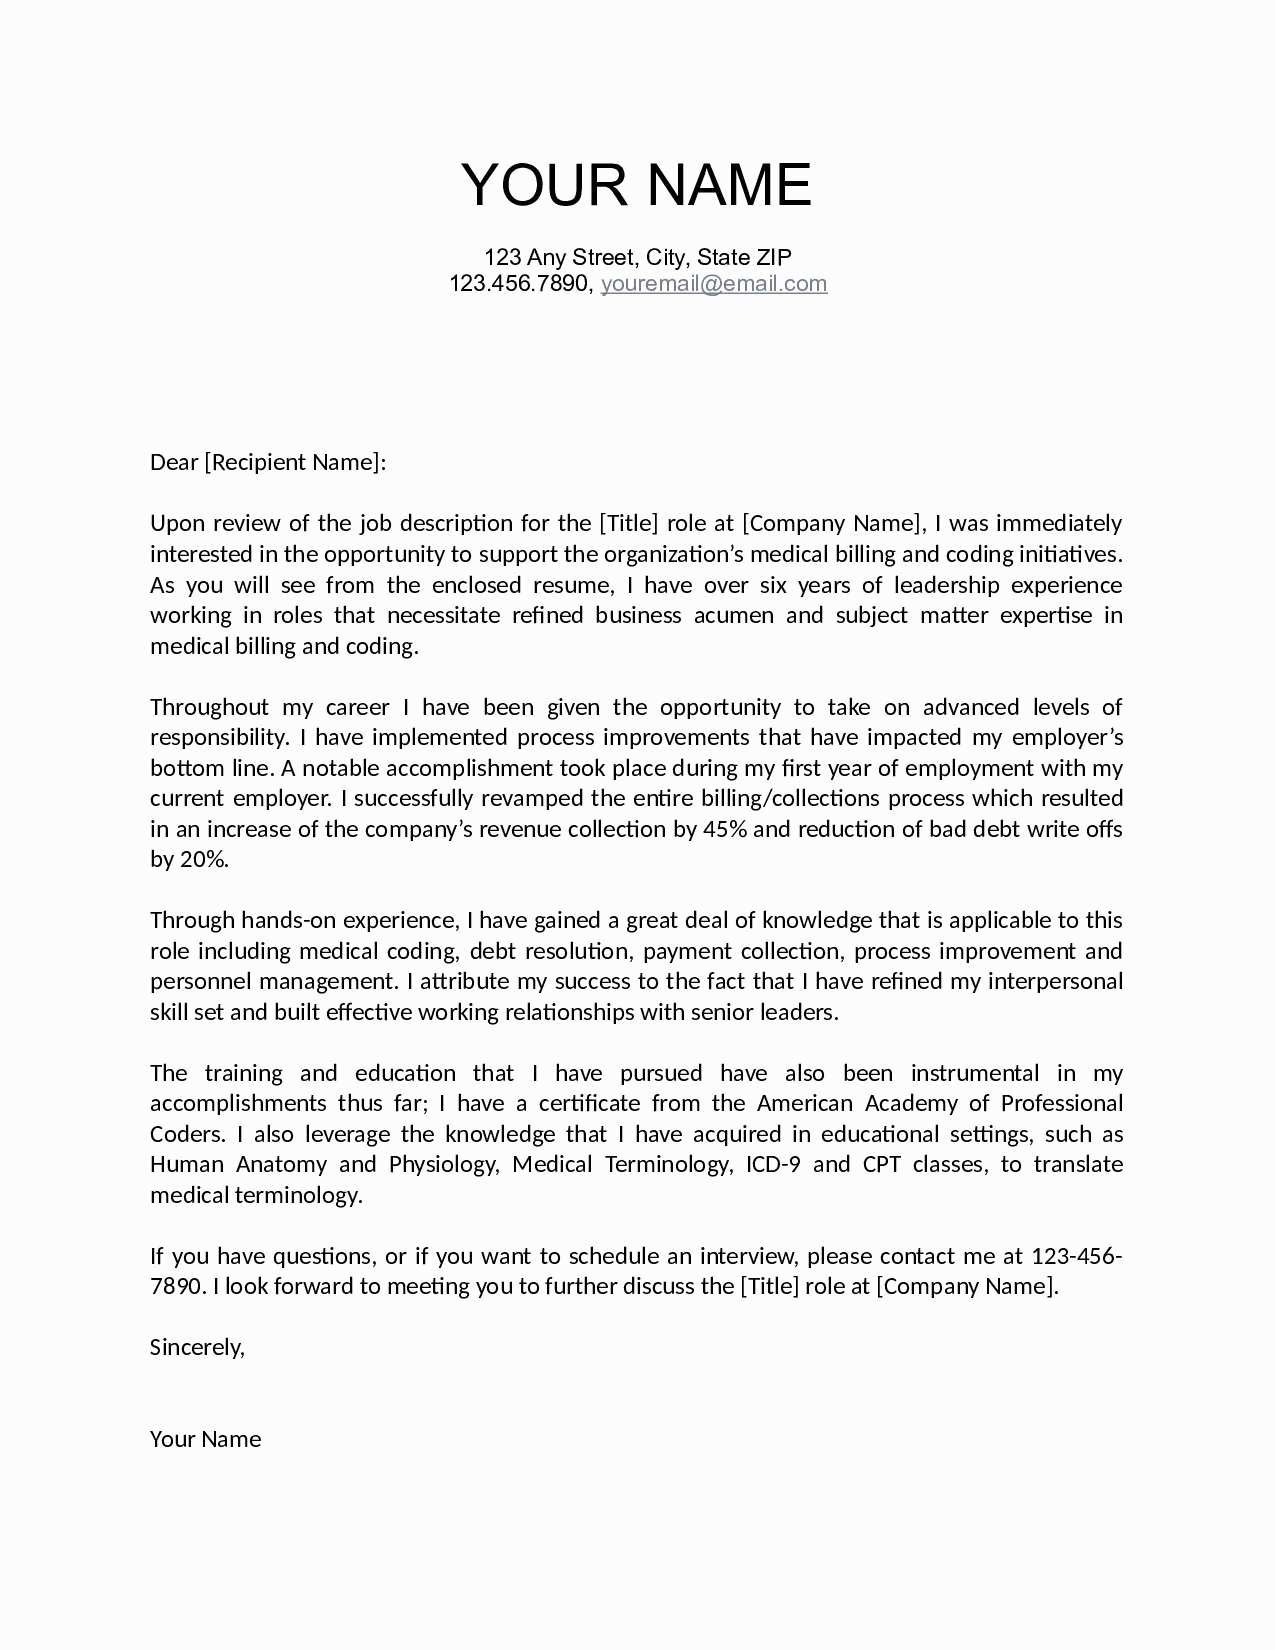 criminal record disclosure letter template example-How to Write A Letter Intent for A Job Save Job Fer Letter Template Us 7-f